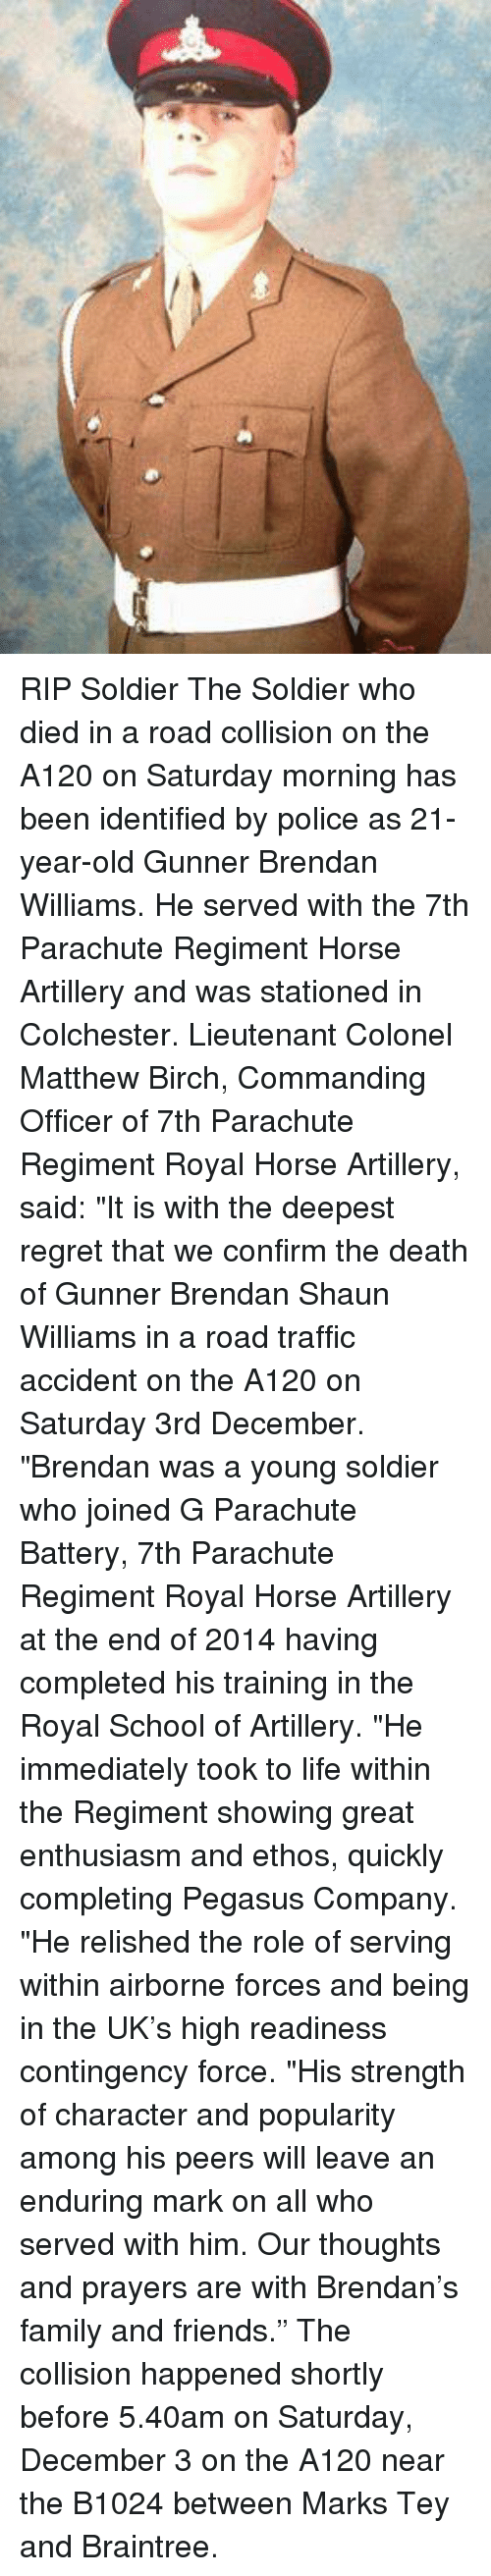 "traffic accident: RIP Soldier The Soldier who died in a road collision on the A120 on Saturday morning has been identified by police as 21-year-old Gunner Brendan Williams.  He served with the 7th Parachute Regiment Horse Artillery and was stationed in Colchester.  Lieutenant Colonel Matthew Birch, Commanding Officer of 7th Parachute Regiment Royal Horse Artillery, said: ""It is with the deepest regret that we confirm the death of Gunner Brendan Shaun Williams in a road traffic accident on the A120 on Saturday 3rd December.  ""Brendan was a young soldier who joined G Parachute Battery, 7th Parachute Regiment Royal Horse Artillery at the end of 2014 having completed his training in the Royal School of Artillery.  ""He immediately took to life within the Regiment showing great enthusiasm and ethos, quickly completing Pegasus Company.  ""He relished the role of serving within airborne forces and being in the UK's high readiness contingency force.  ""His strength of character and popularity among his peers will leave an enduring mark on all who served with him. Our thoughts and prayers are with Brendan's family and friends.""  The collision happened shortly before 5.40am on Saturday, December 3 on the A120 near the B1024 between Marks Tey and Braintree."